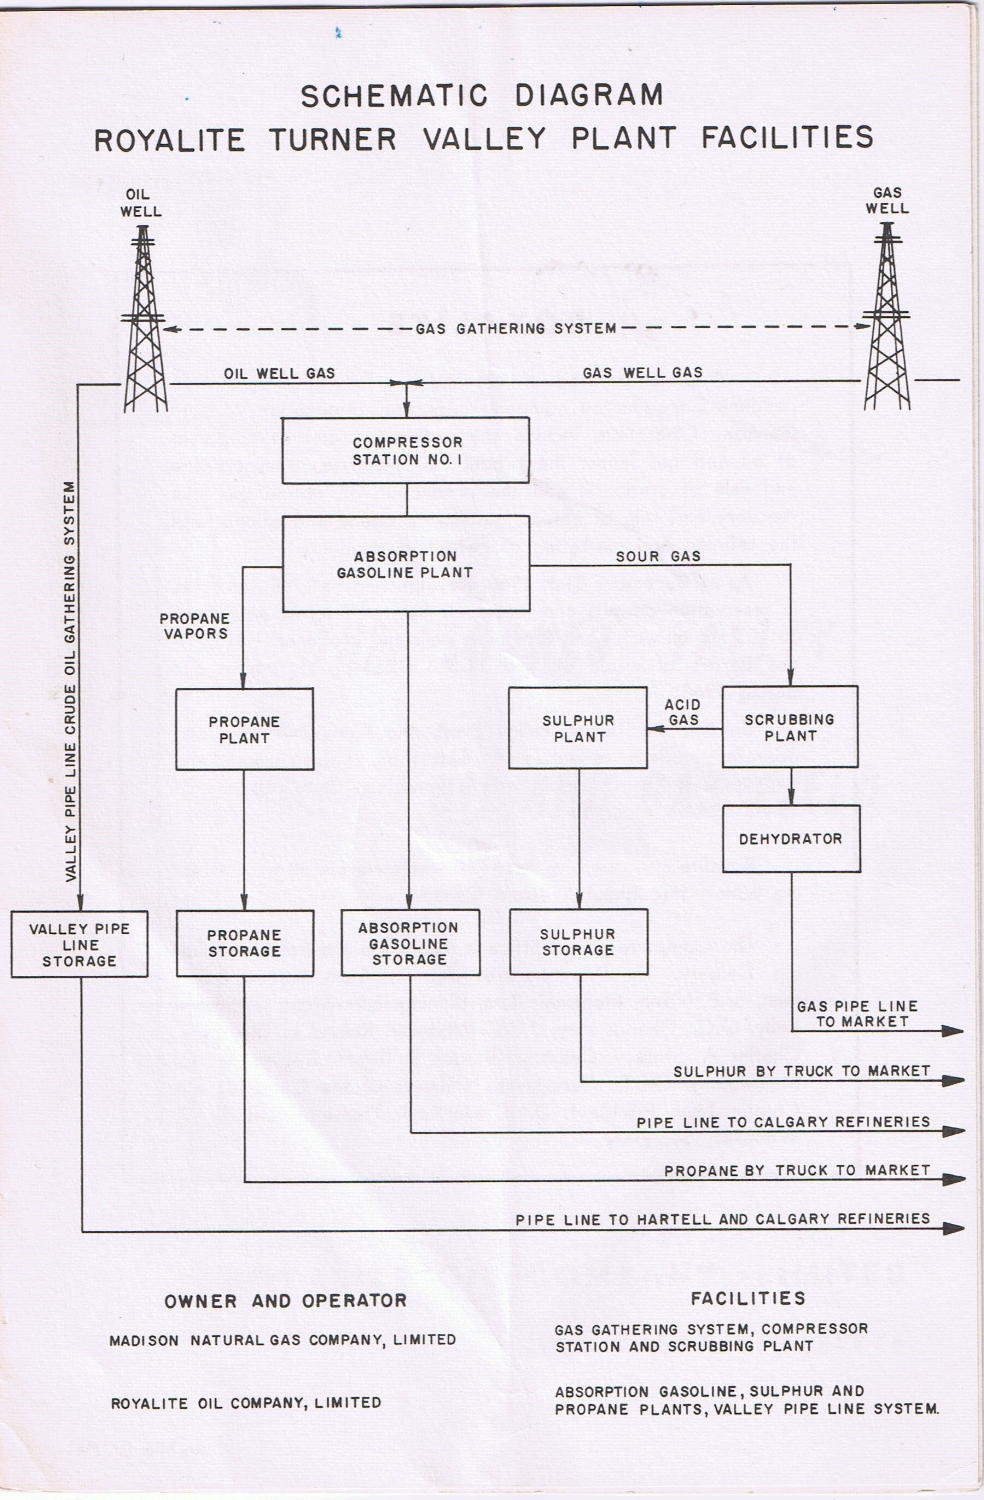 Royalite gas plant flow chart_cropped.jpg